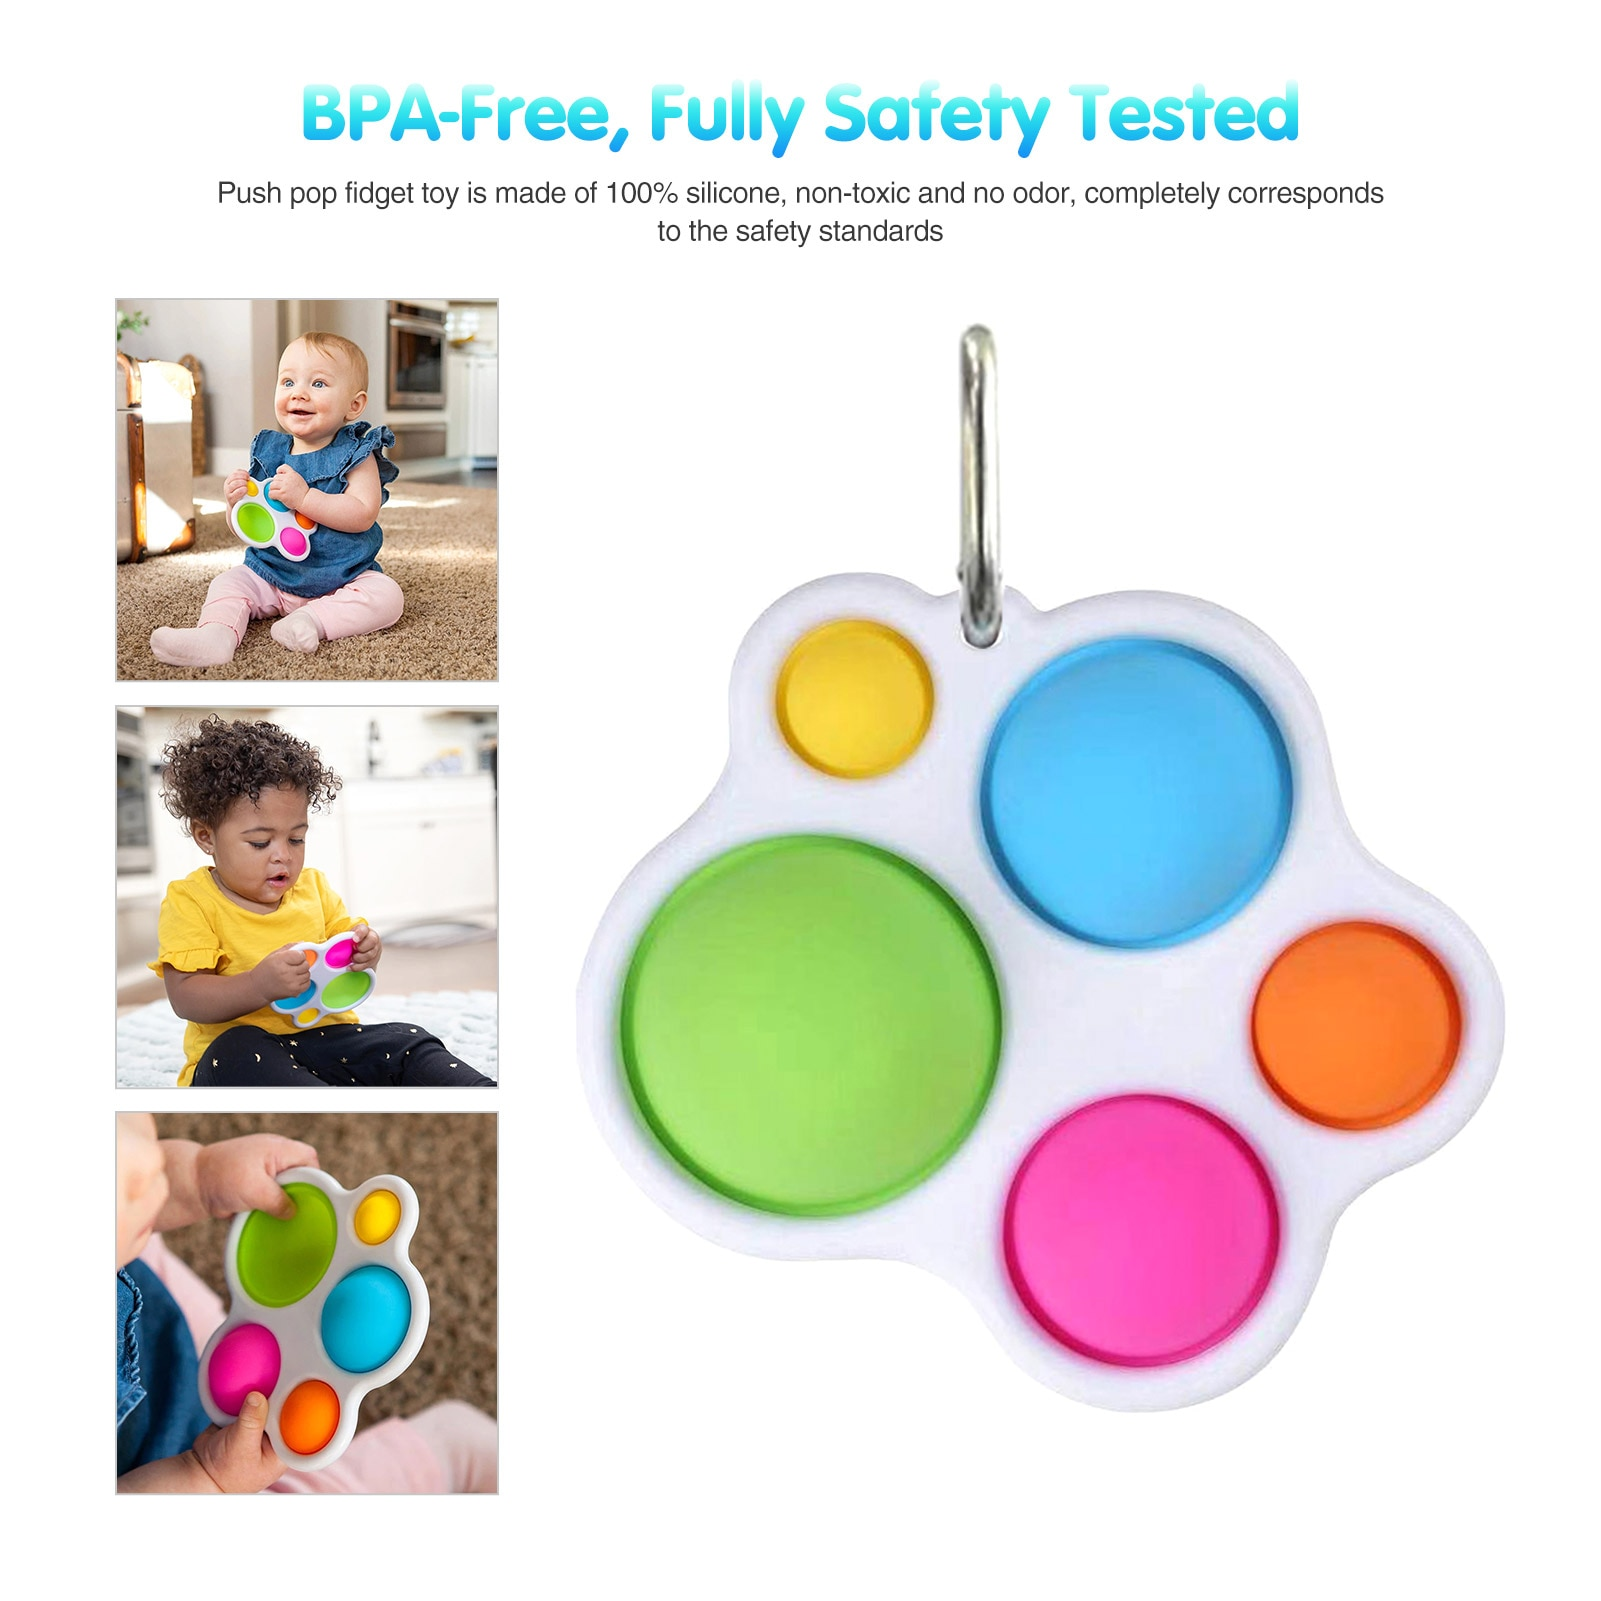 23PCS Fidget Sensory Toy Set Stress Relief Toys Autism Special Needs Anti Stress Anxiety Reliever Hand Toy For Kids Adults Gifts enlarge